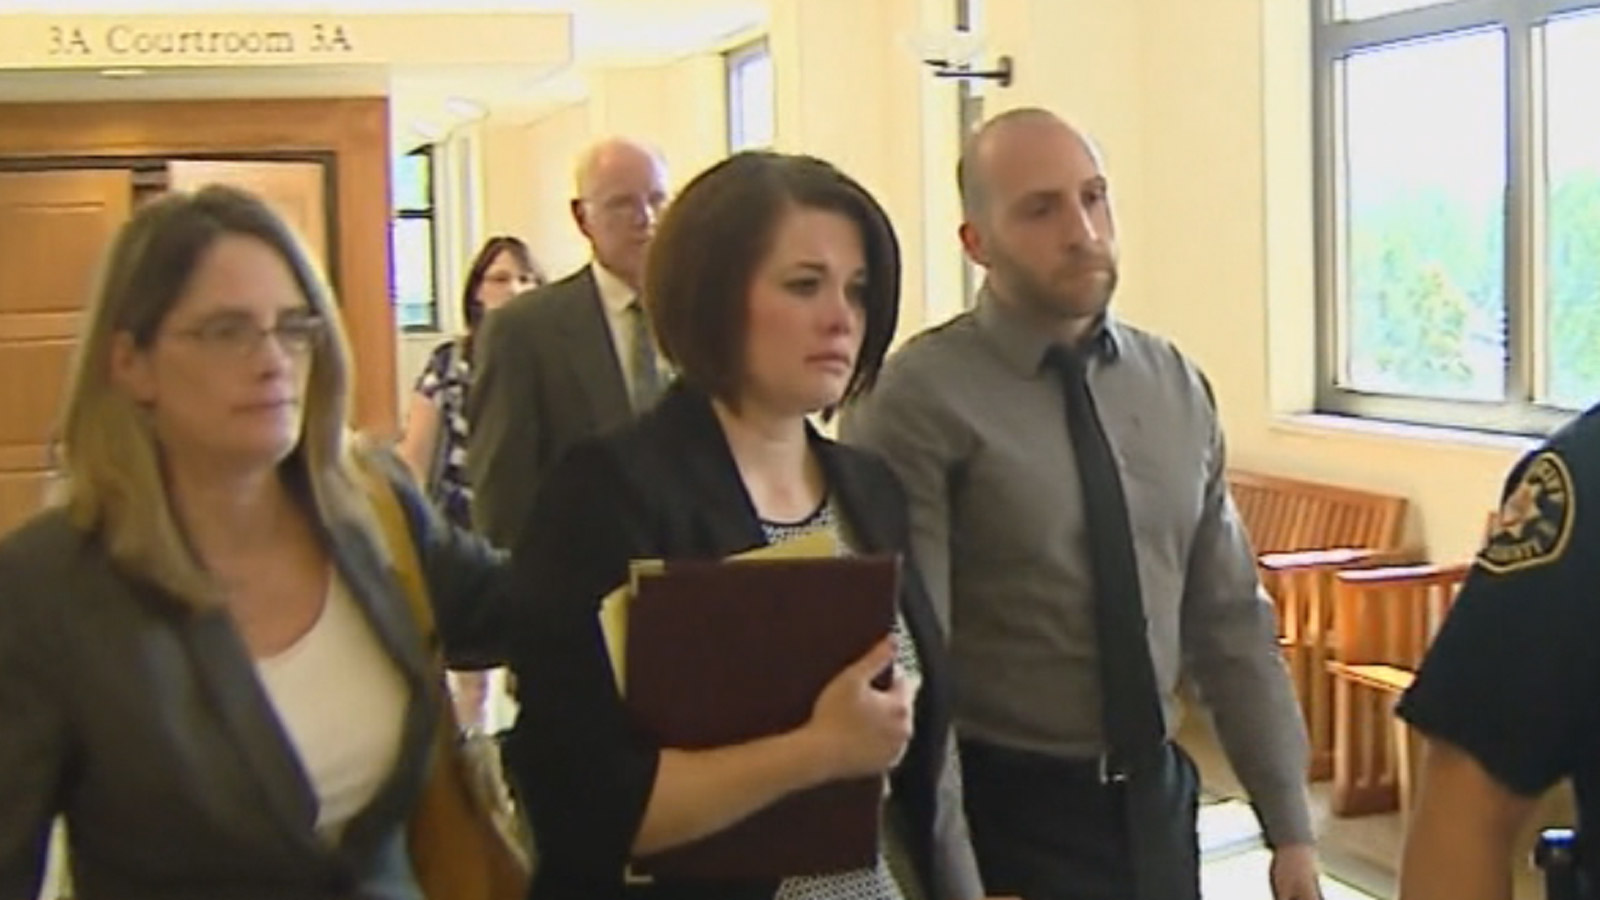 Theresa O'Connor leaves the Larimer County Courtroom (credit: CBS)